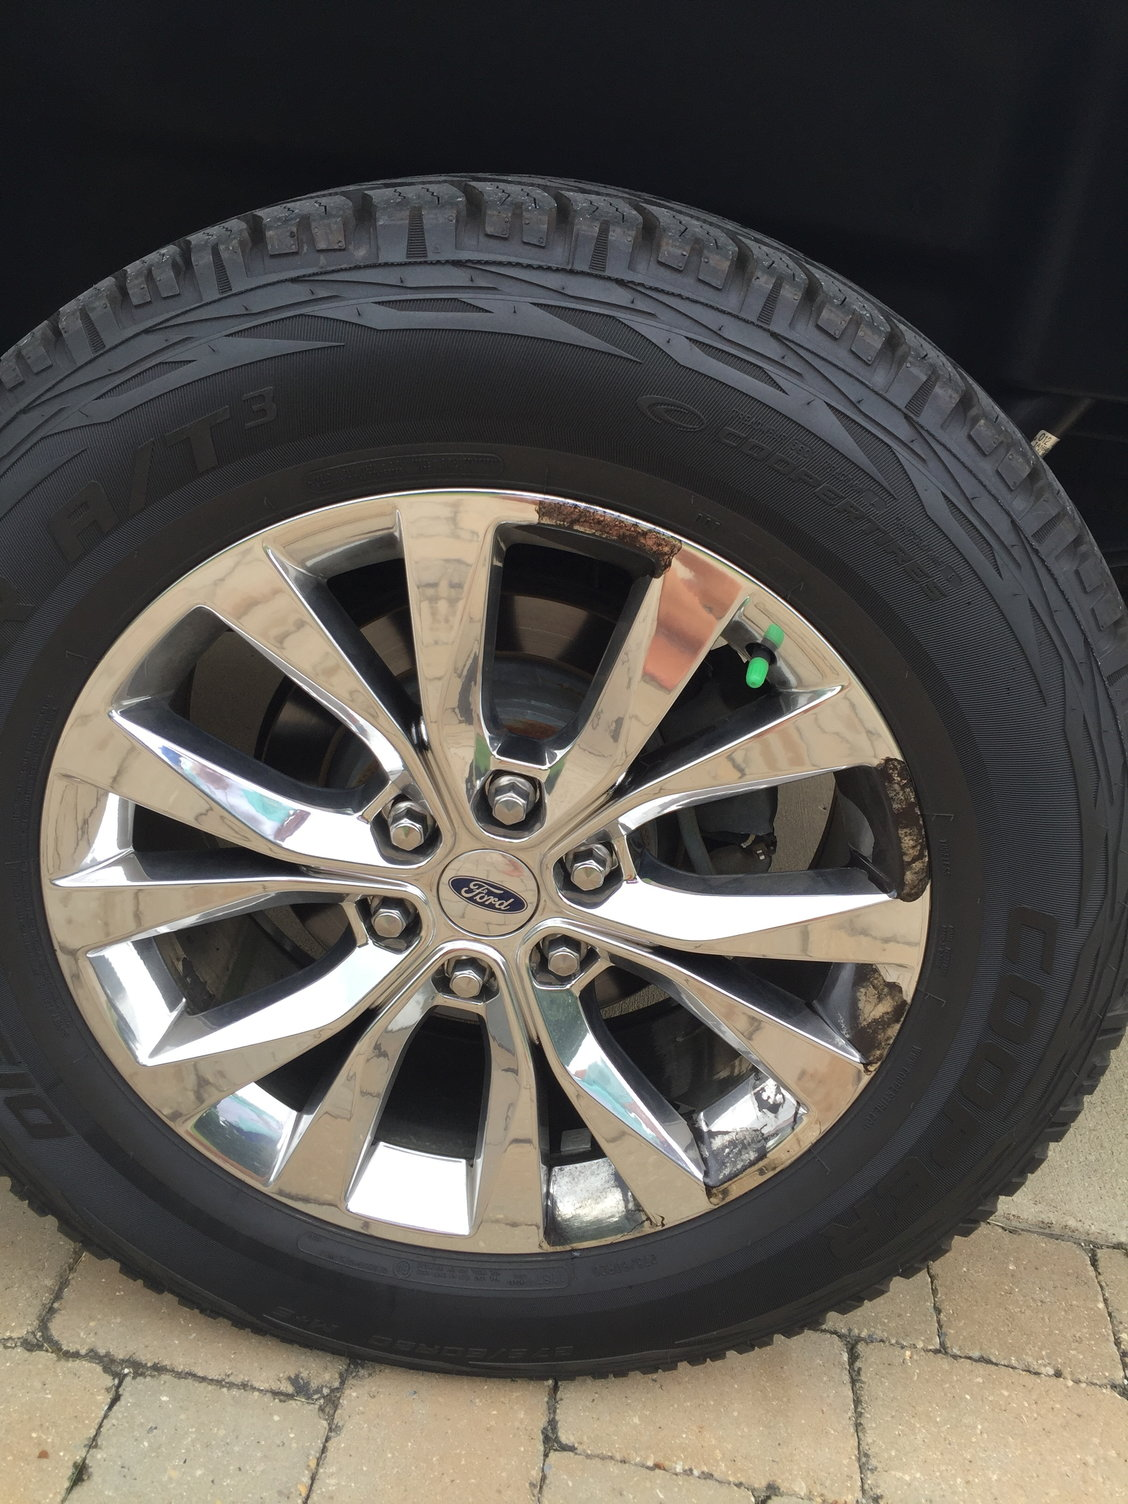 Ford F150 Oem Wheels >> OEM PVD wheels peeling - Page 3 - Ford F150 Forum ...